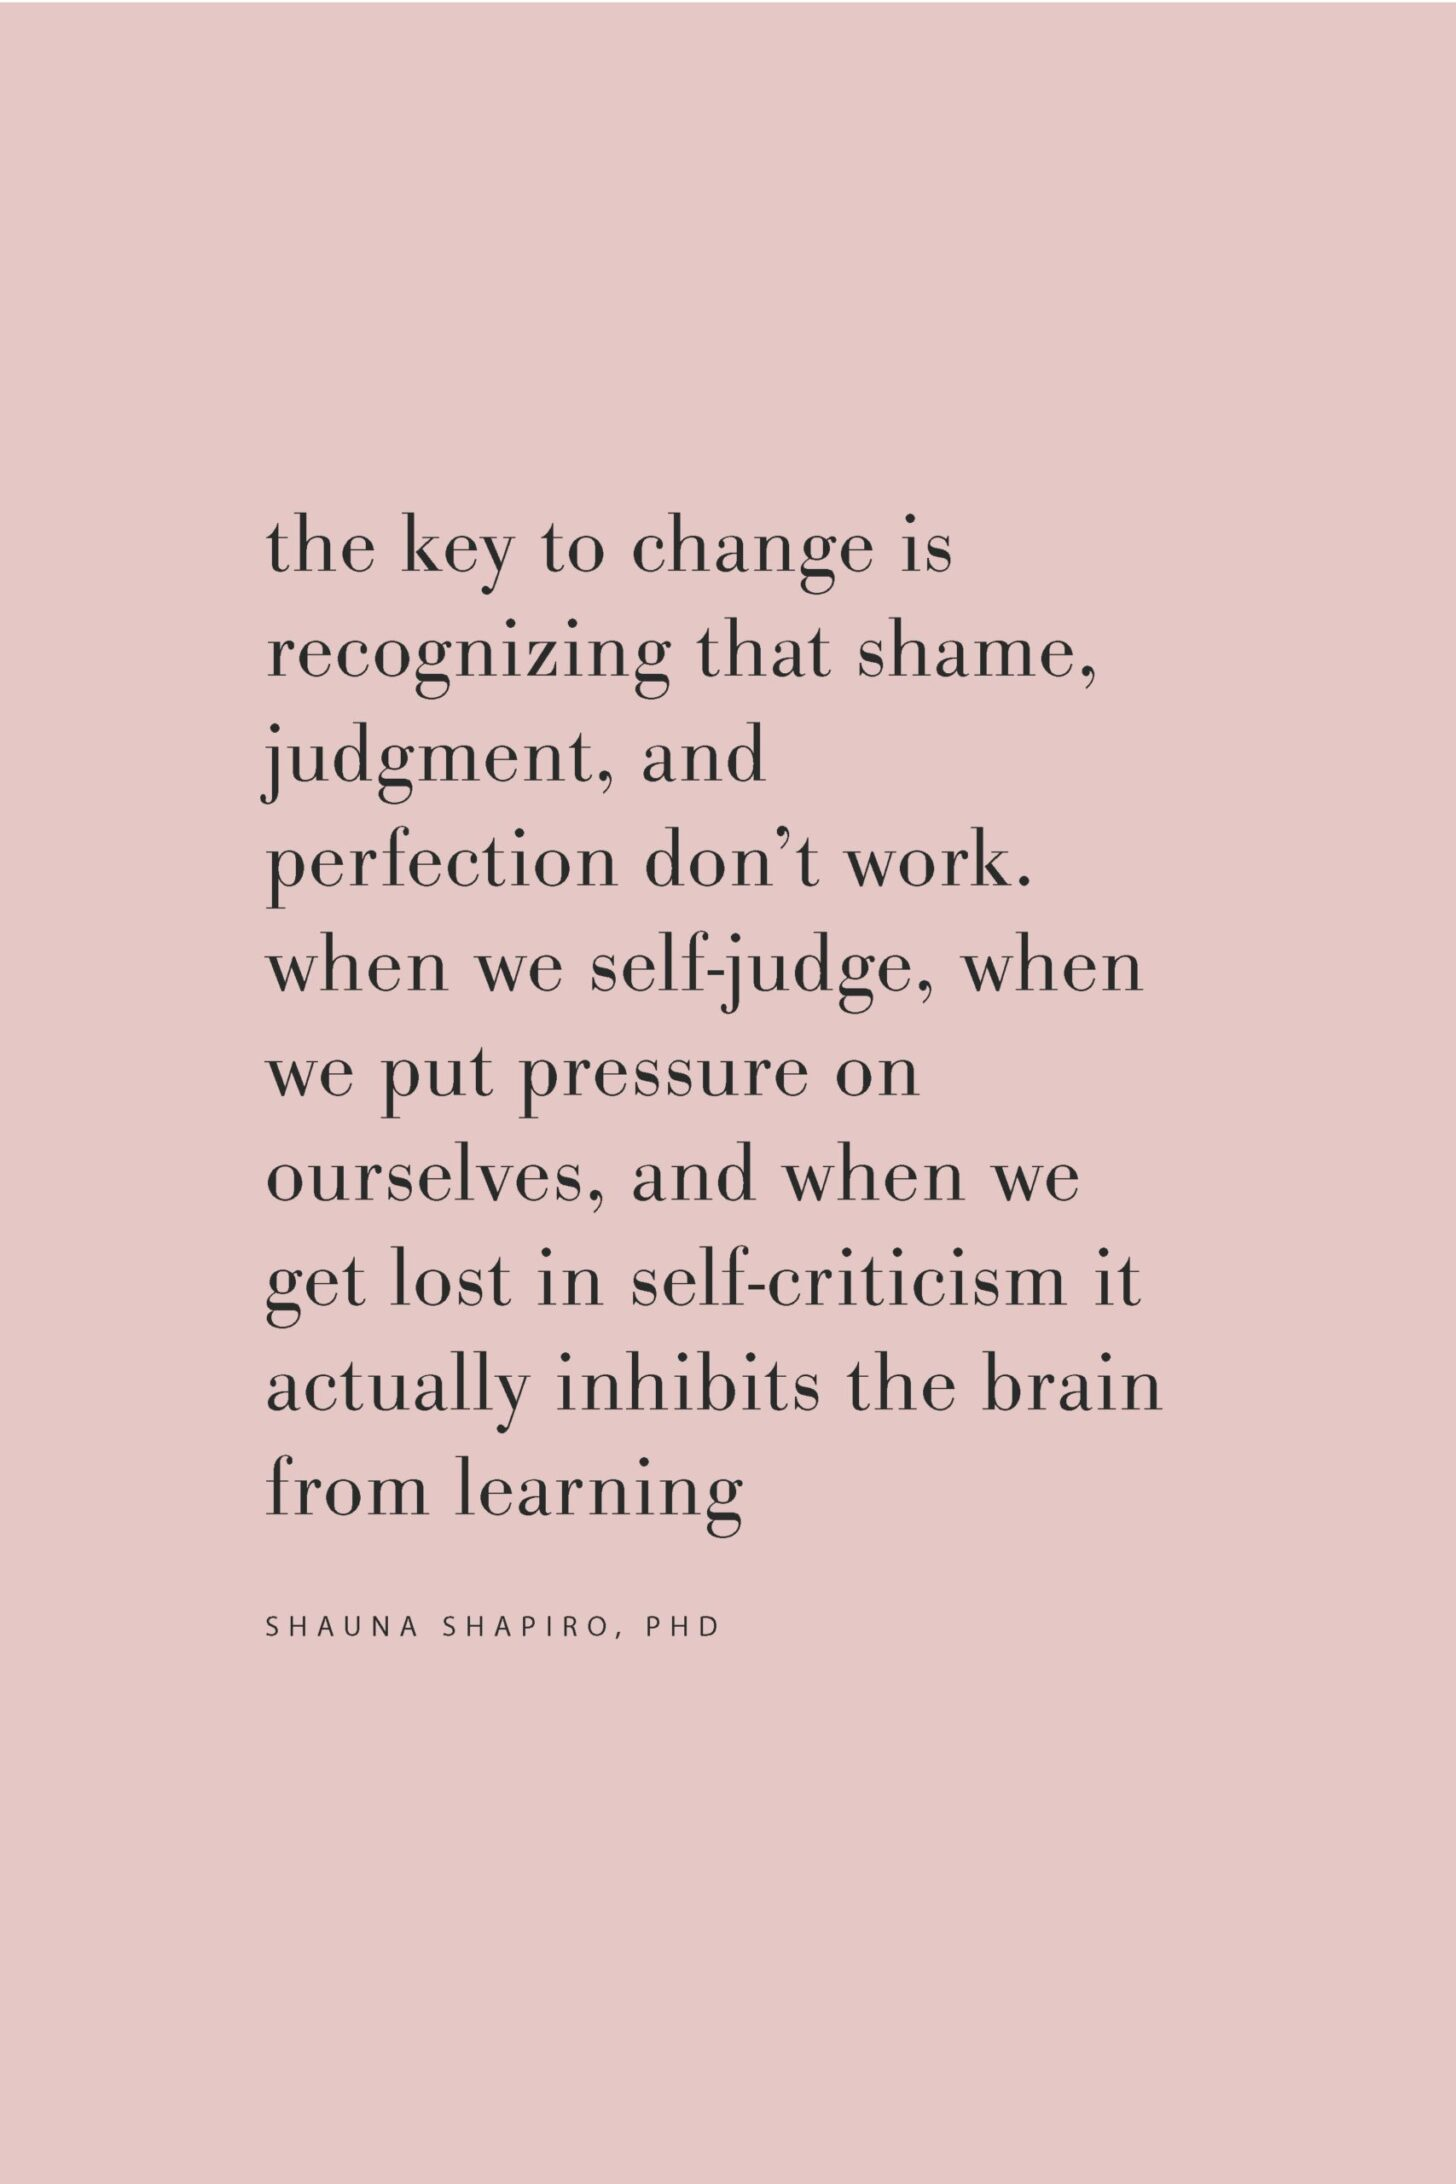 Quote on the key to change by Shauna Shapiro, PhD on the Feel Good Effect Podcast #realfoodwholelife #feelgoodeffectpodcast #selfcarequote #motivationalquote #inspirationalquote #positivityquote #selfkindnessquote #selfcompassionquote #mindfulnessquote #perfectionismquote #brainquote